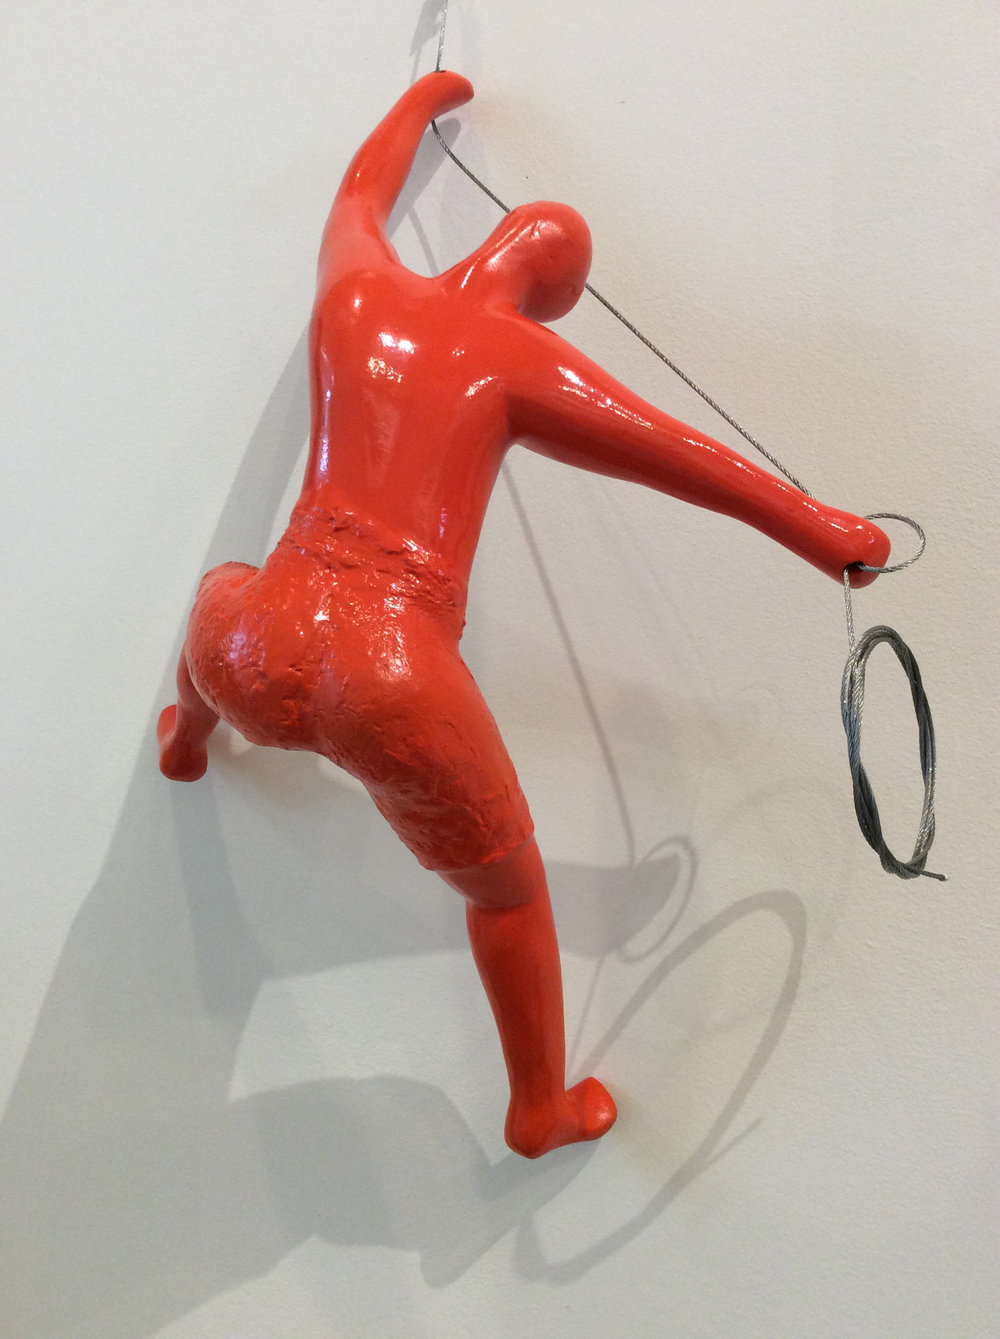 D-Gallerie_ Carlos Peraza _ Climber 01 (Orange)_ 14¾_ x 10¾_ x 6¾__Resin_ 2018_$195.jpg